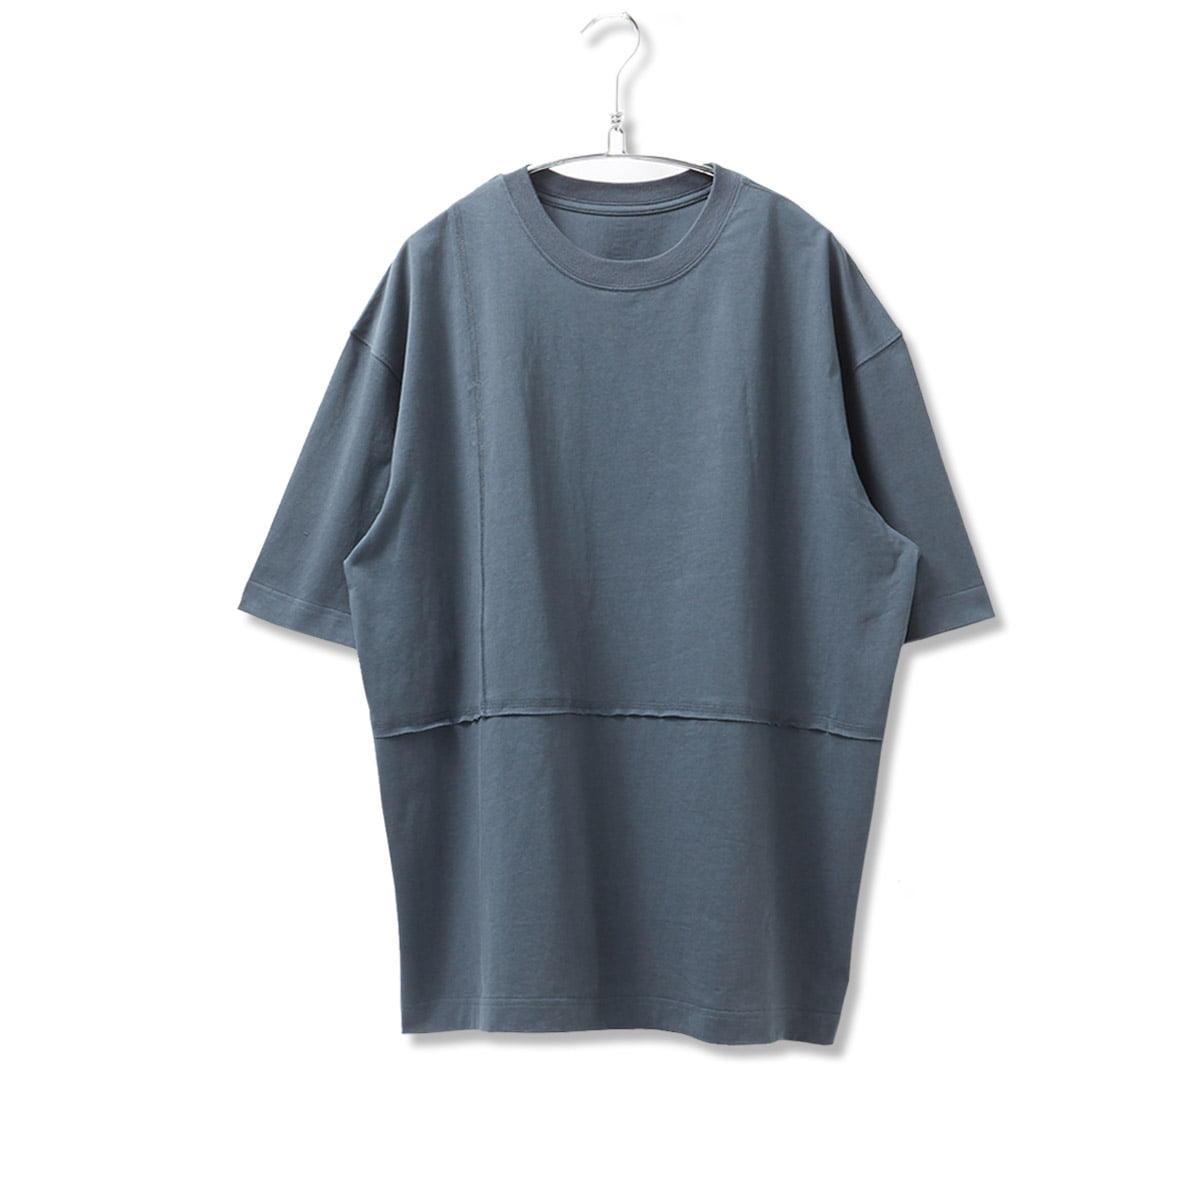 [YOUTH] CUT-OFF T-SHIRT 'CHARCOAL GREY'